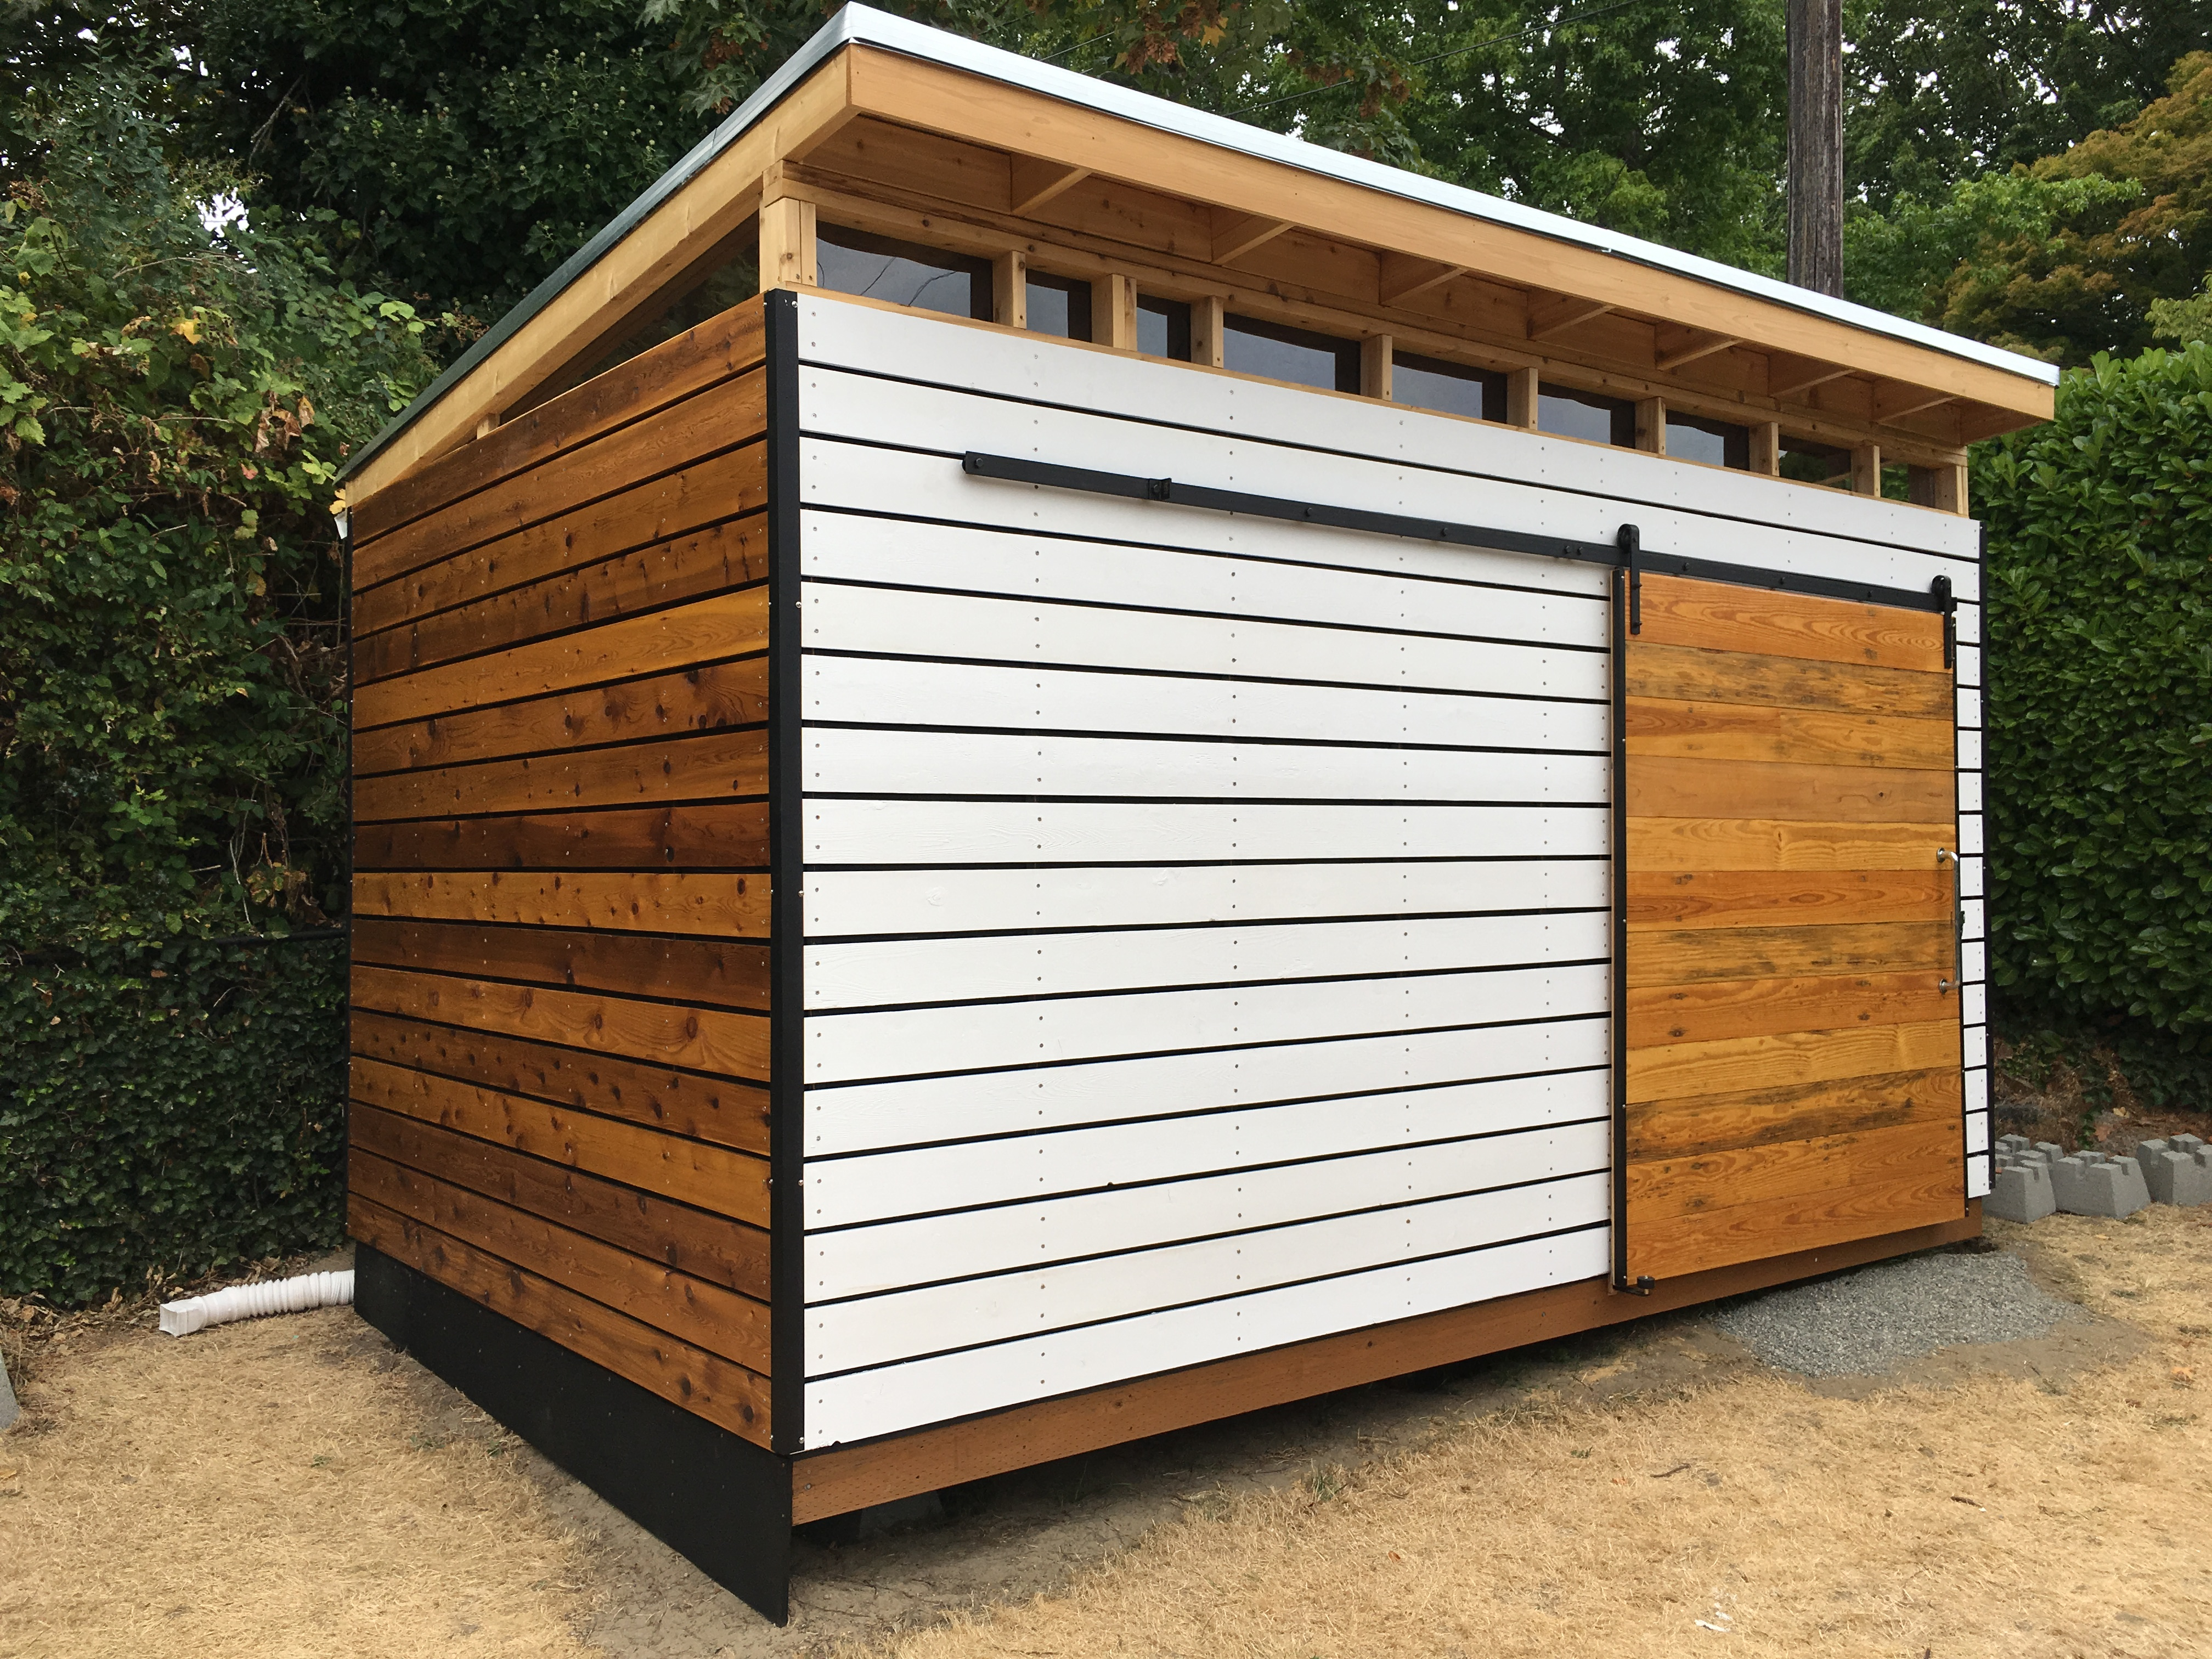 Design Your Own Shed Plans